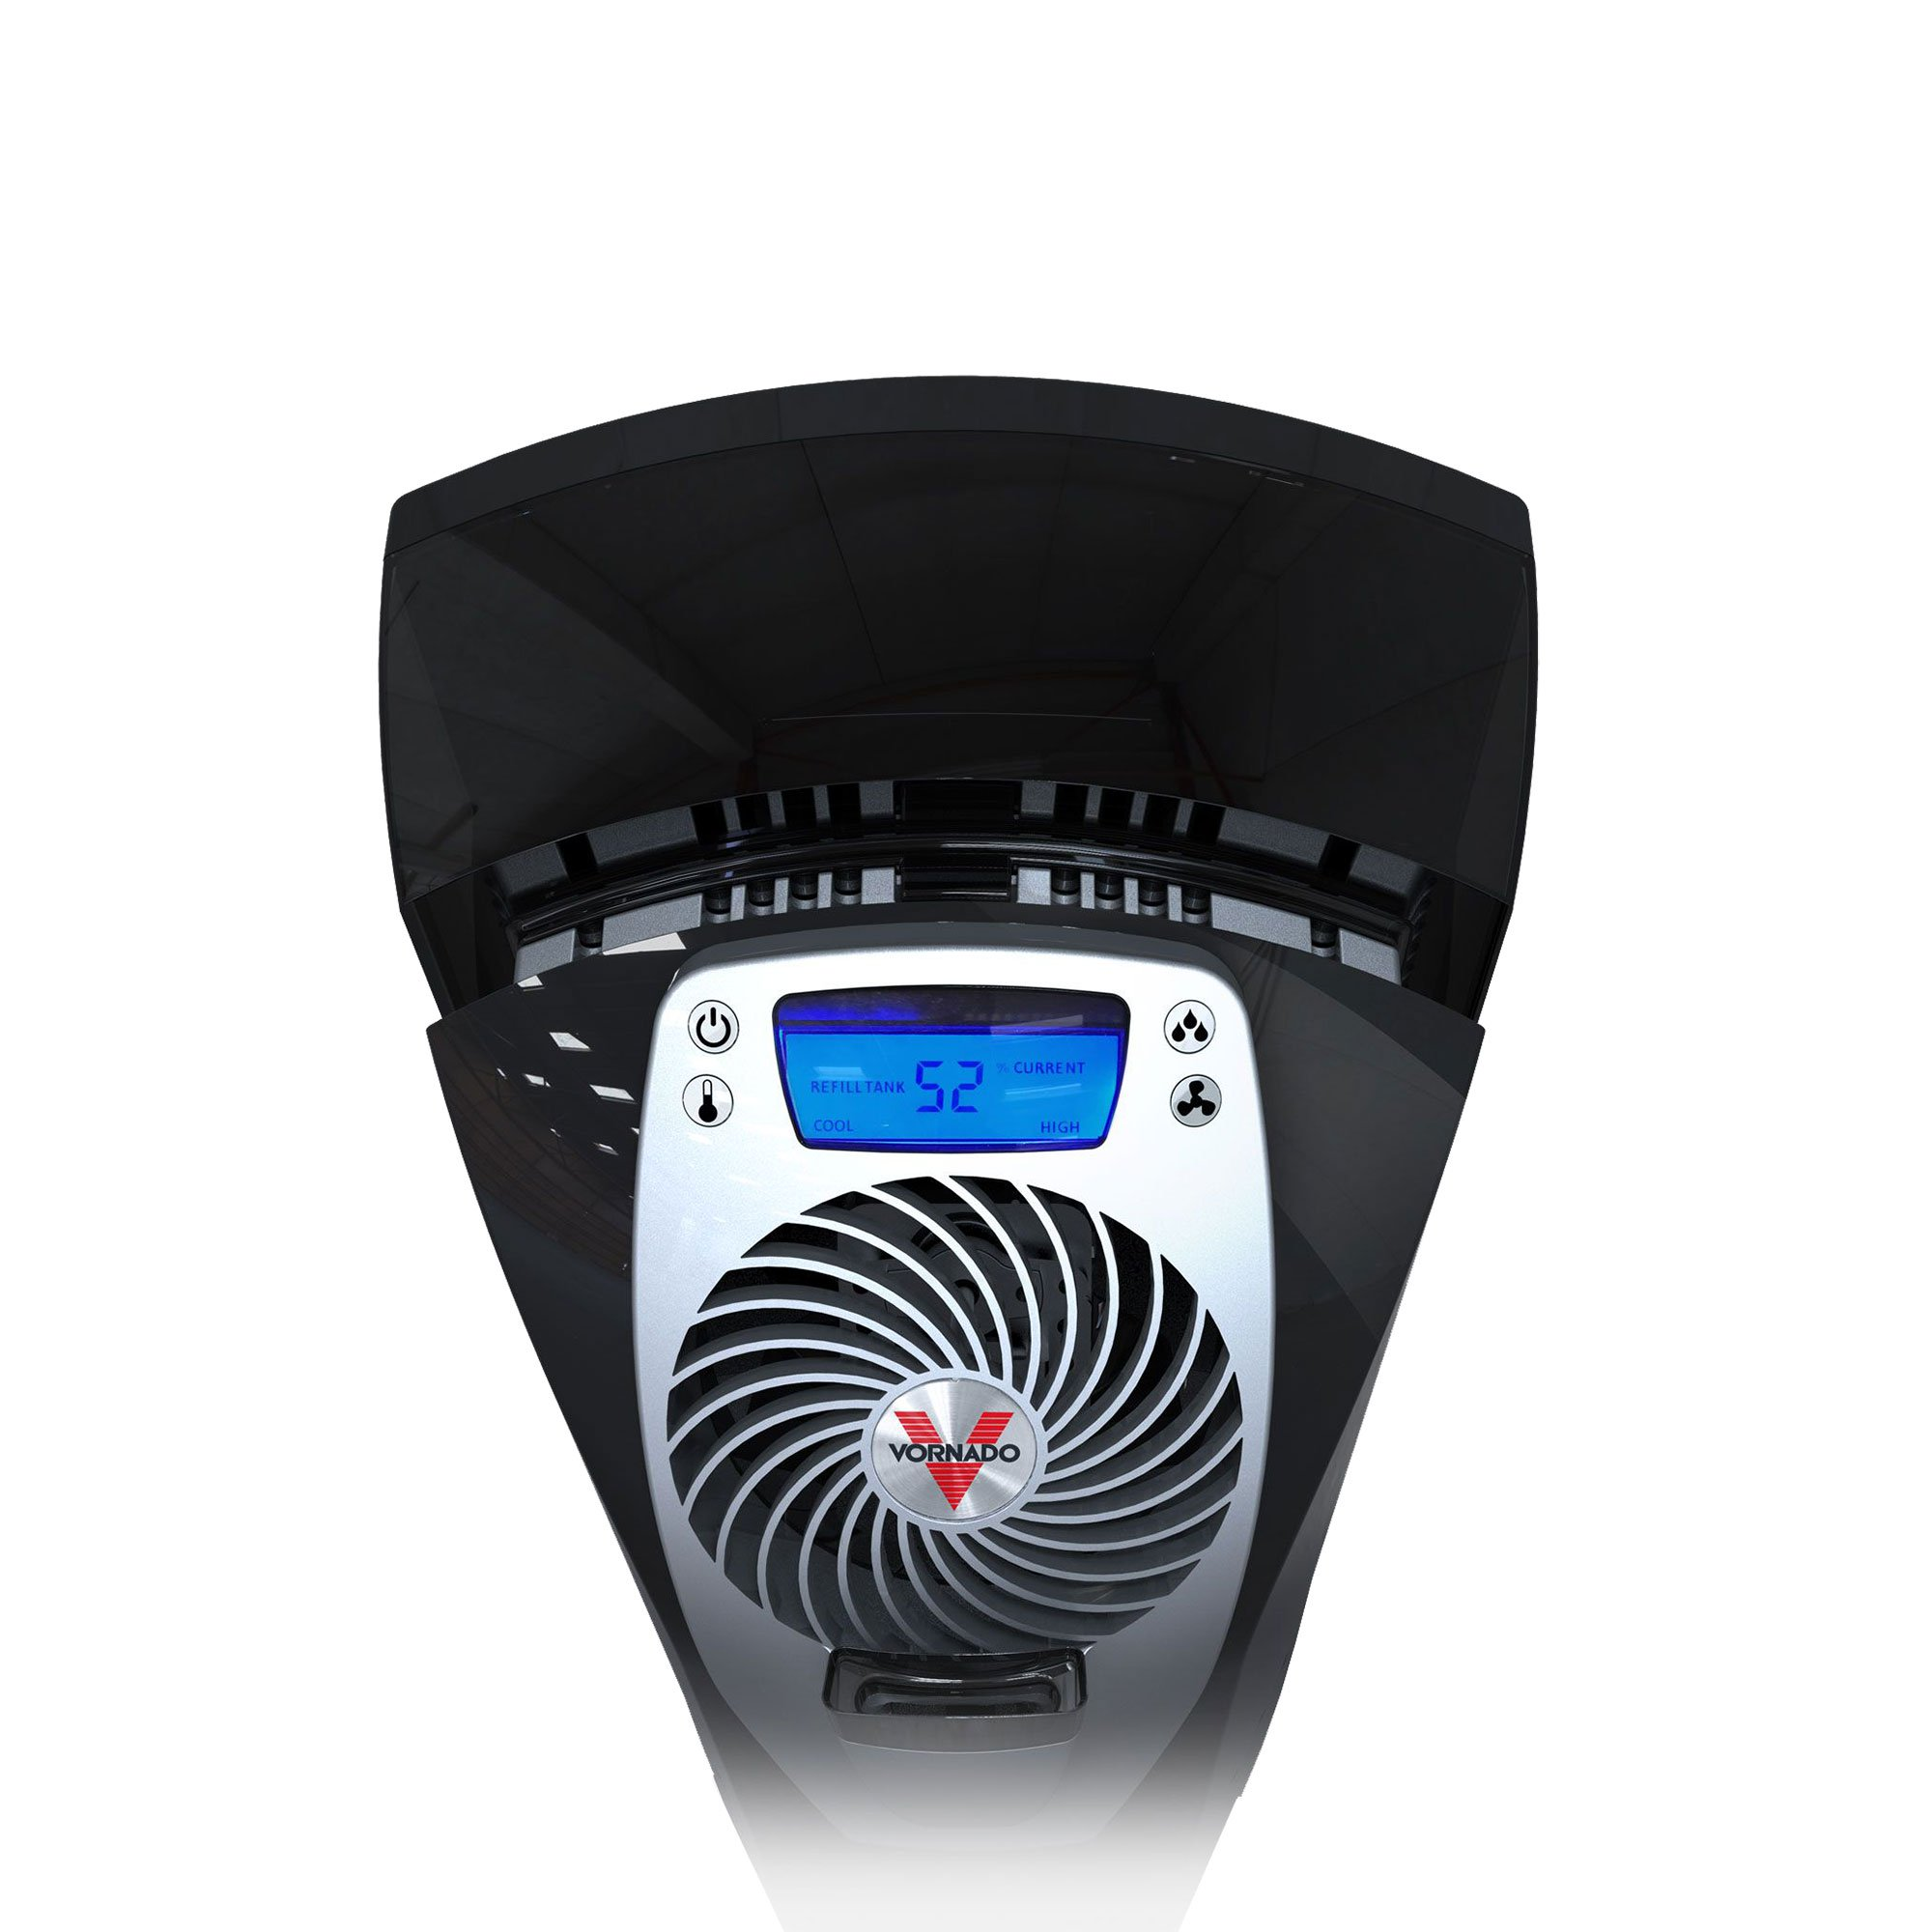 Vornado Whole Room Ultrasonic Humidifier Walmart Com